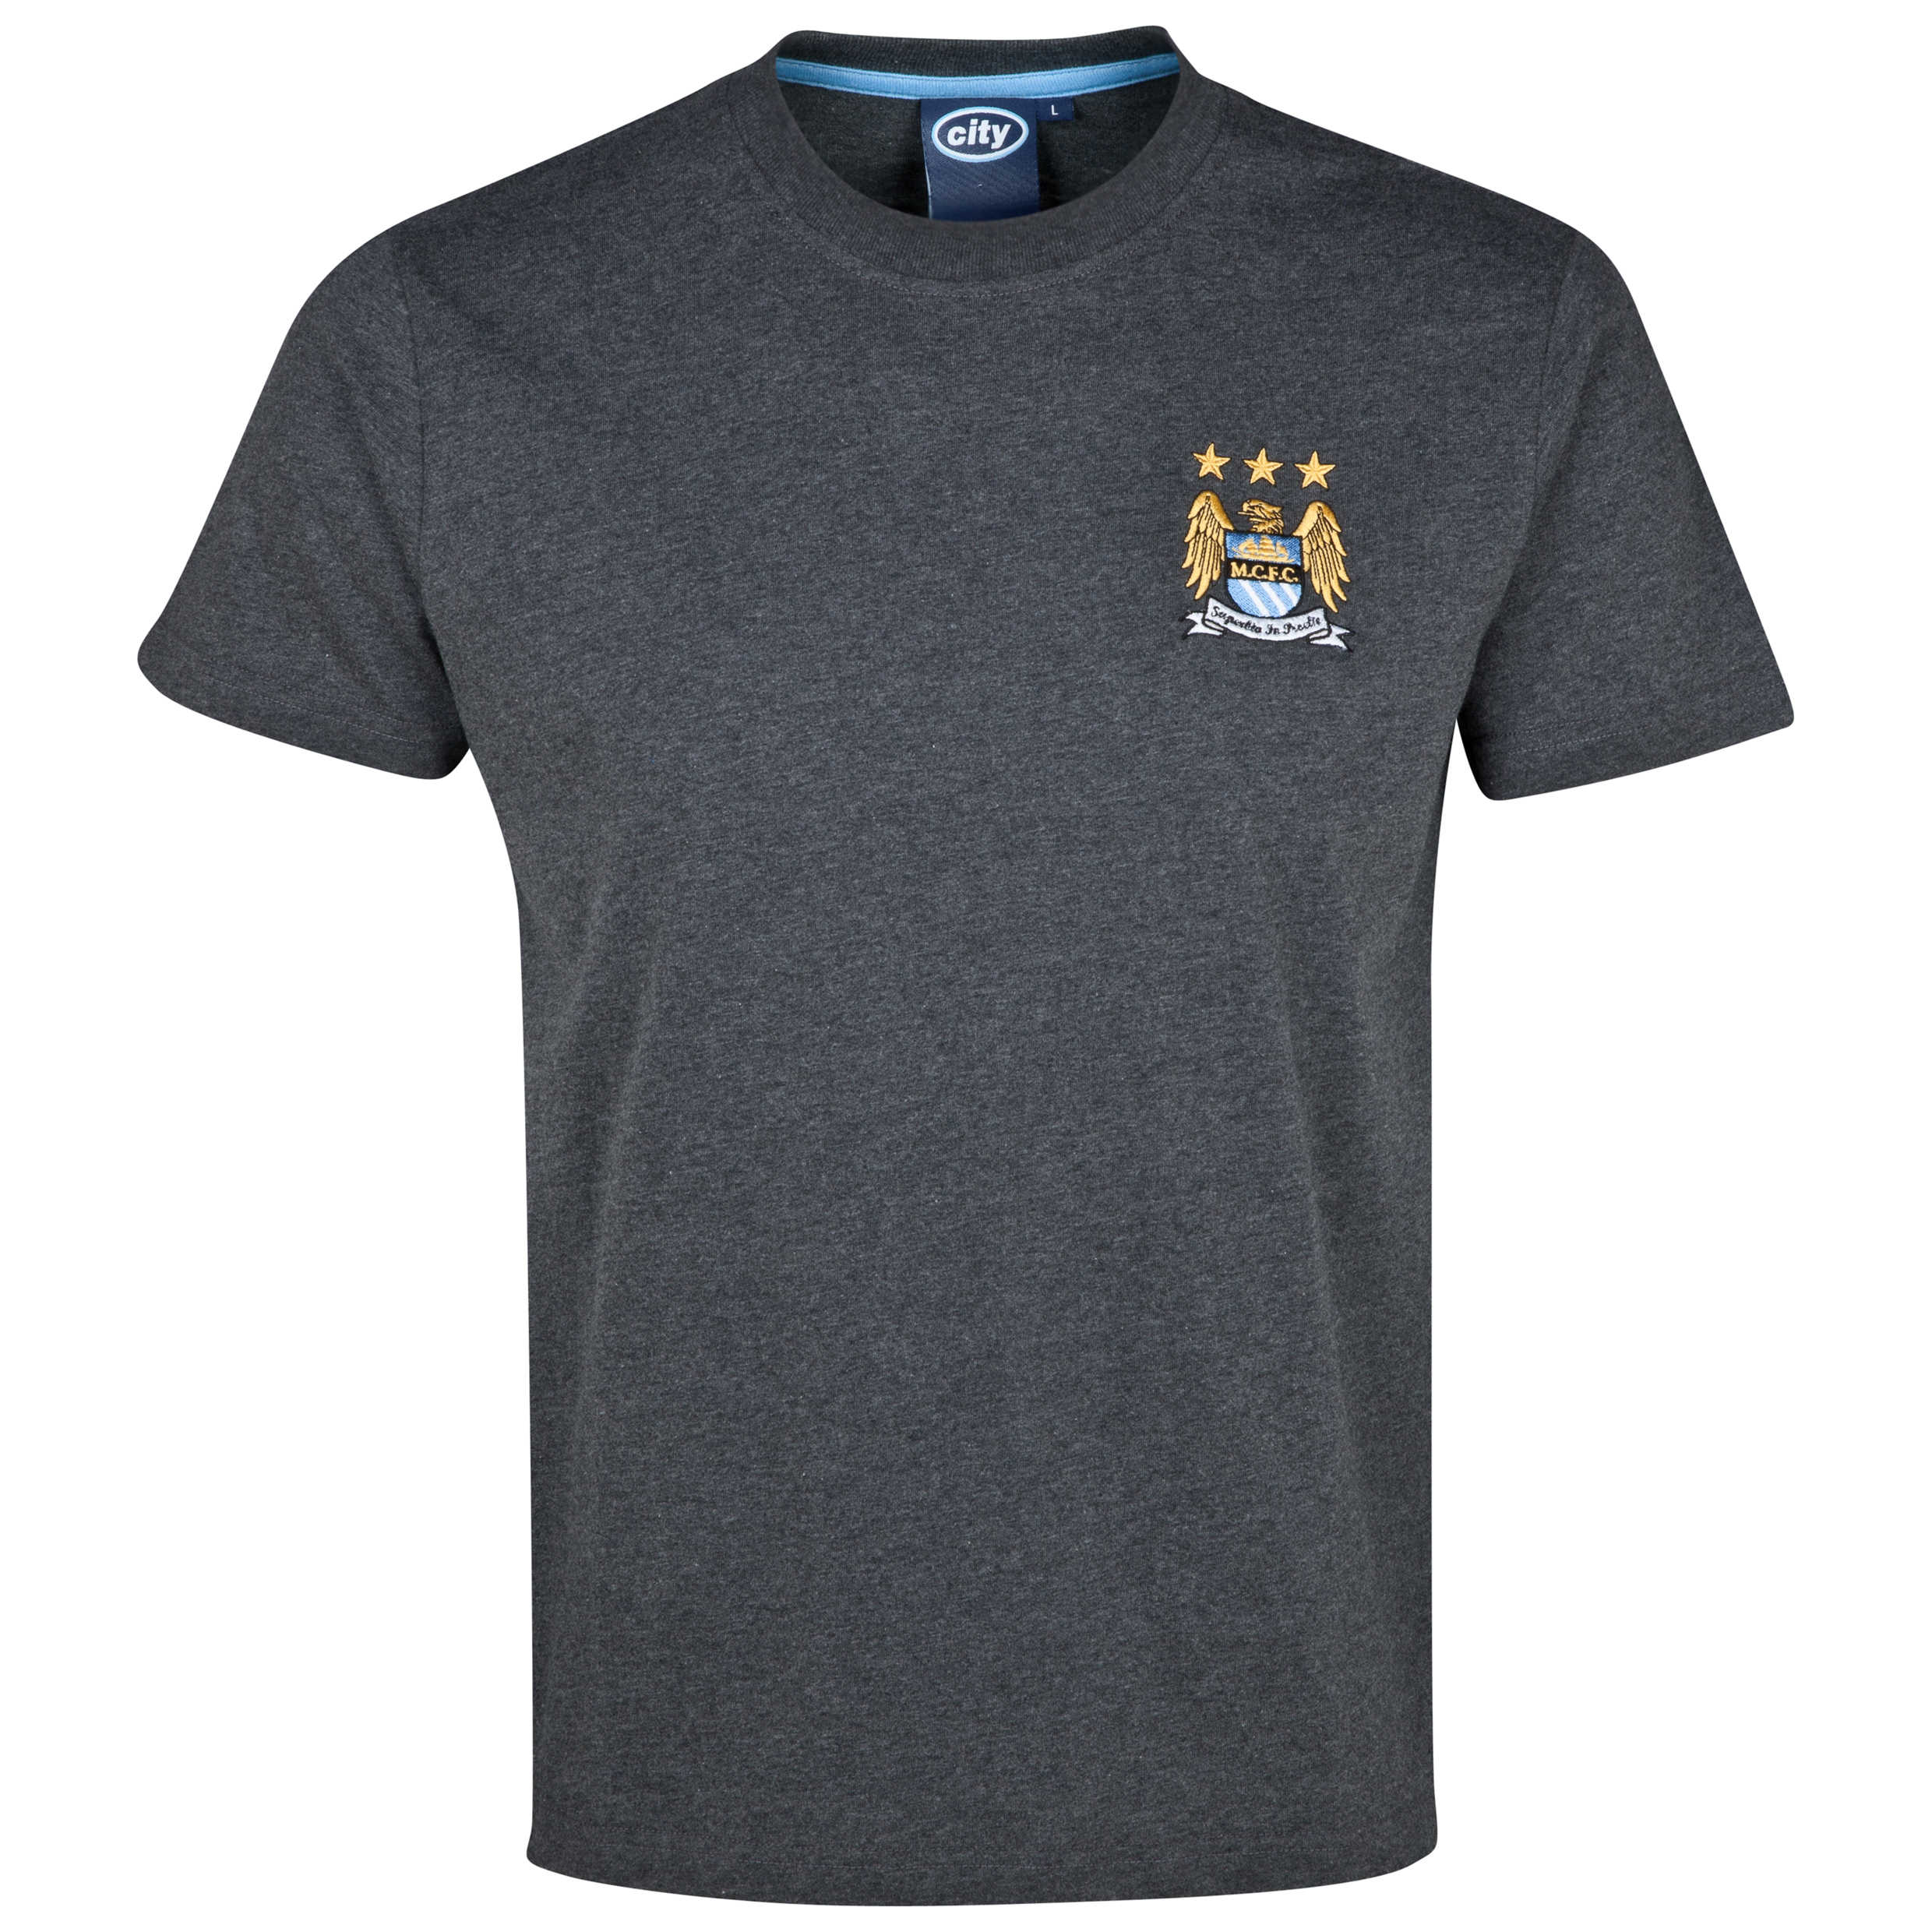 Manchester City Essentials Stitch T-Shirt - Mens Charcoal